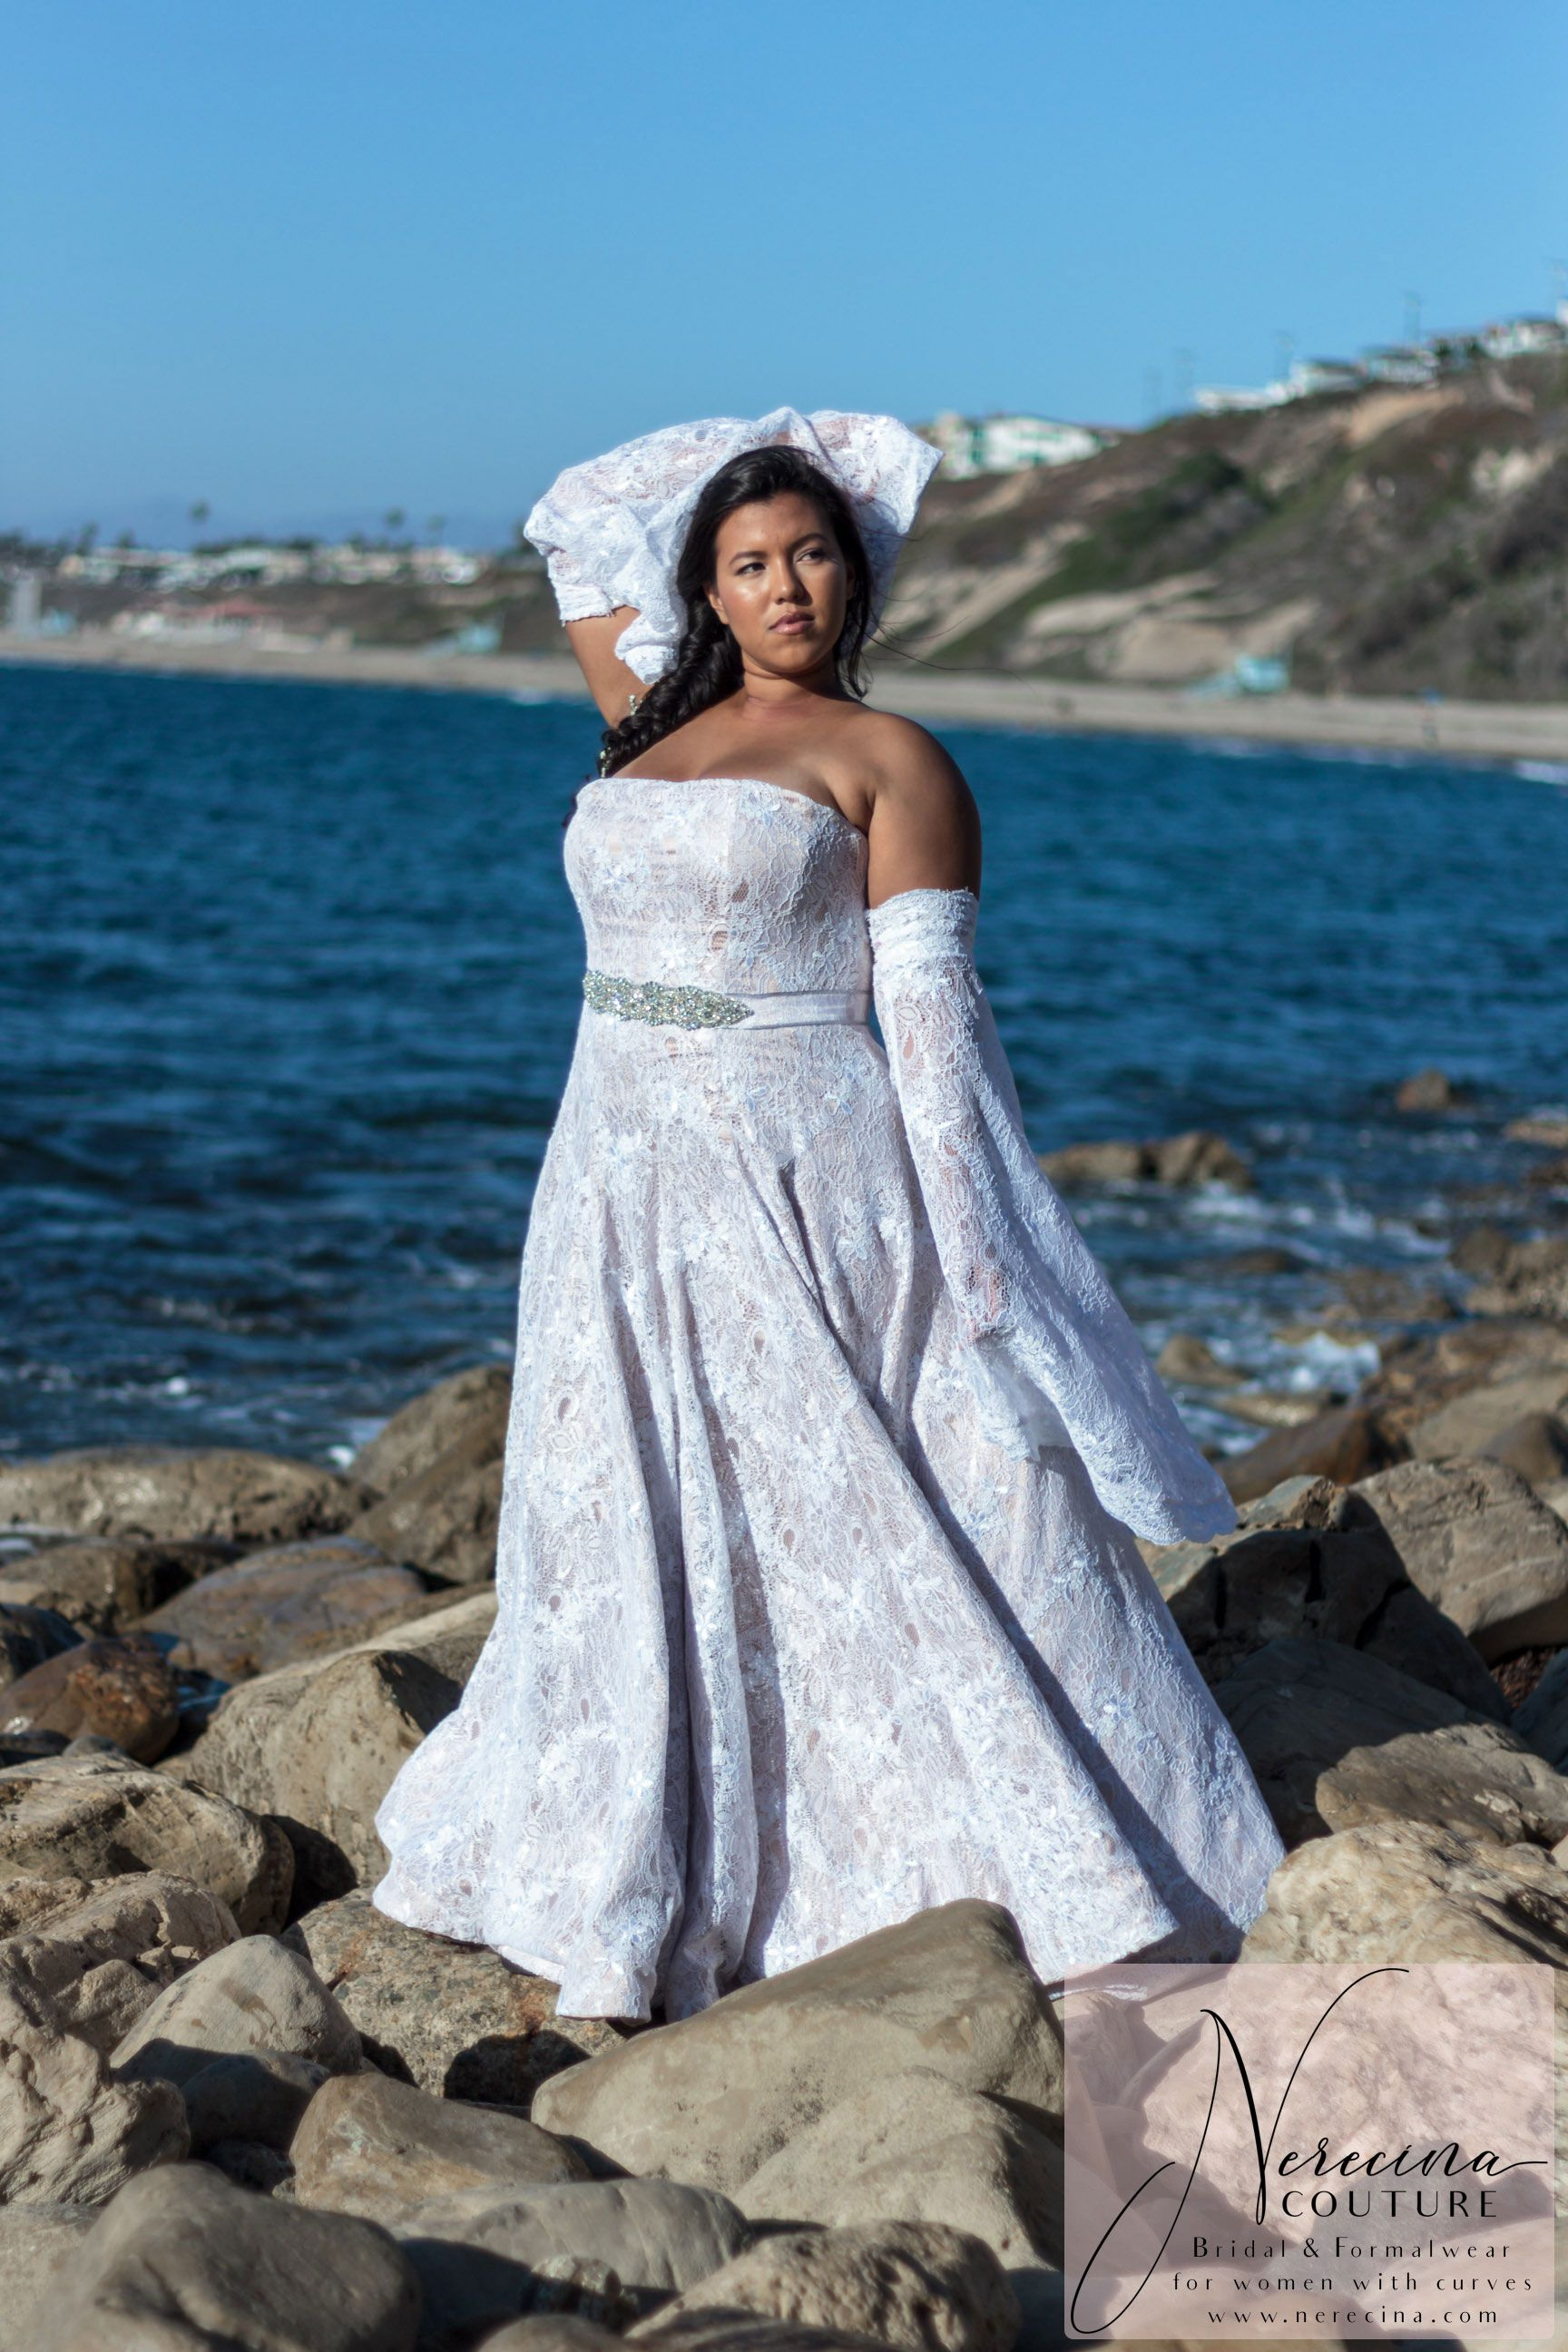 Nerecina Couture Boheme Plus Size Wedding Dress A Lace Strapless Gown With Long Flowin Wedding Gowns With Sleeves Curvy Bride Dress Blue Wedding Dresses [ 2592 x 1728 Pixel ]